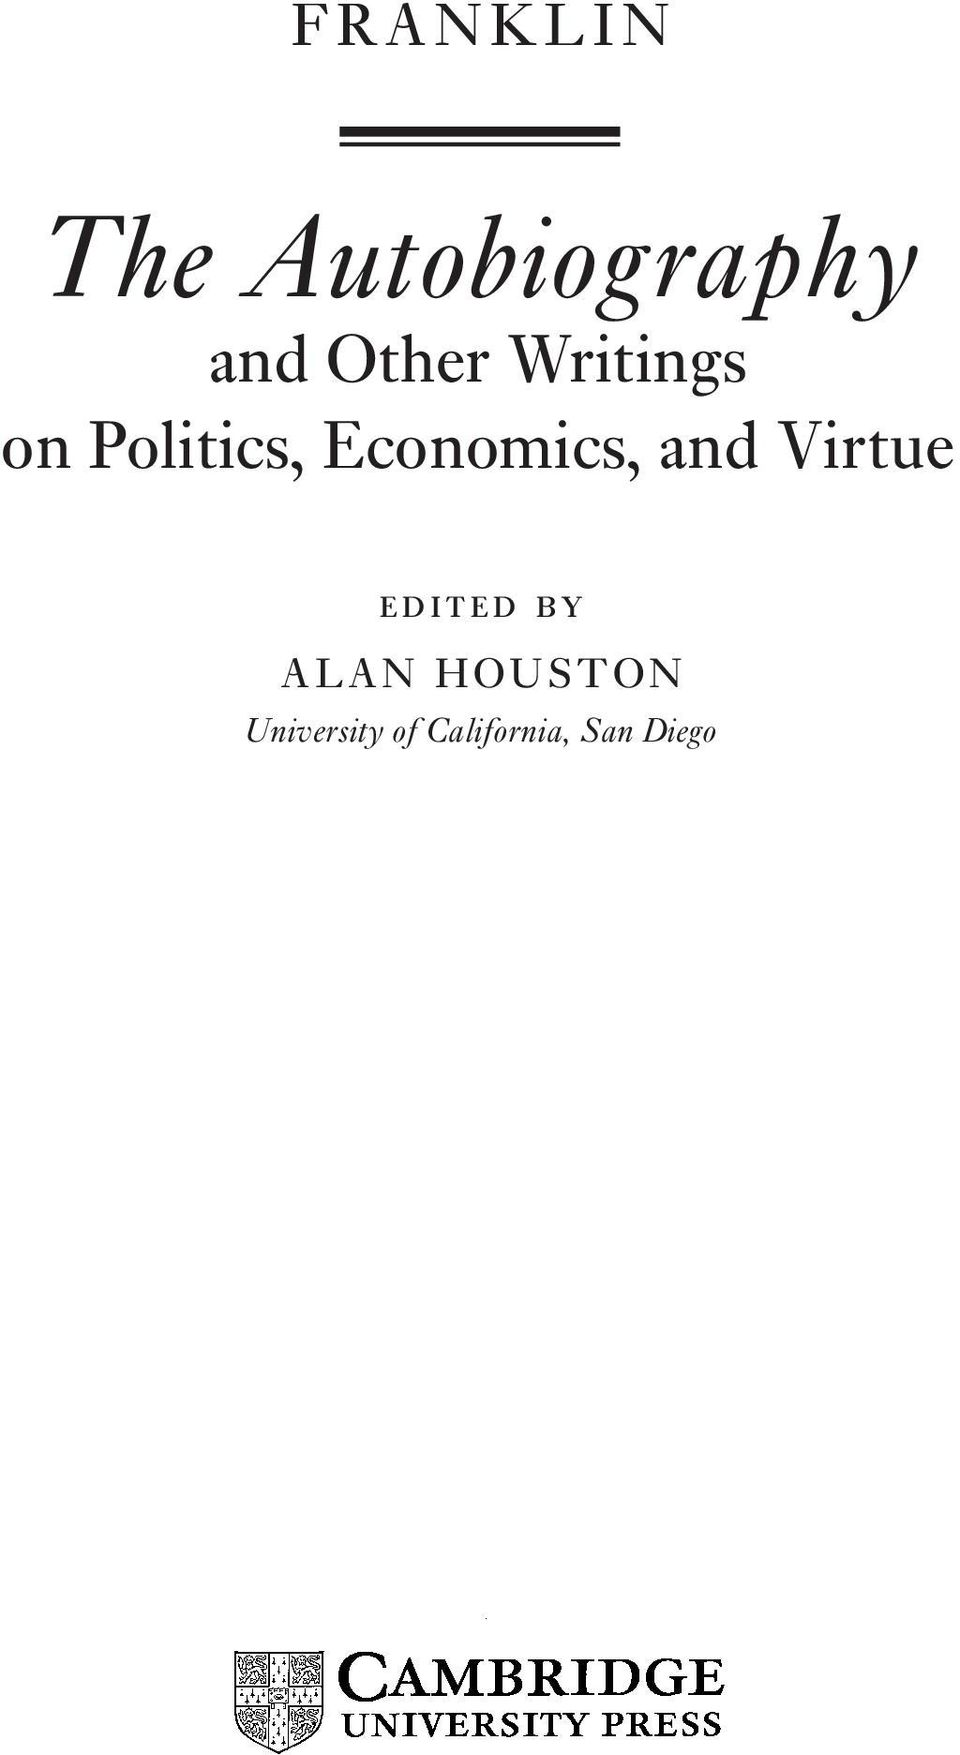 Economics, and Virtue EDITED BY